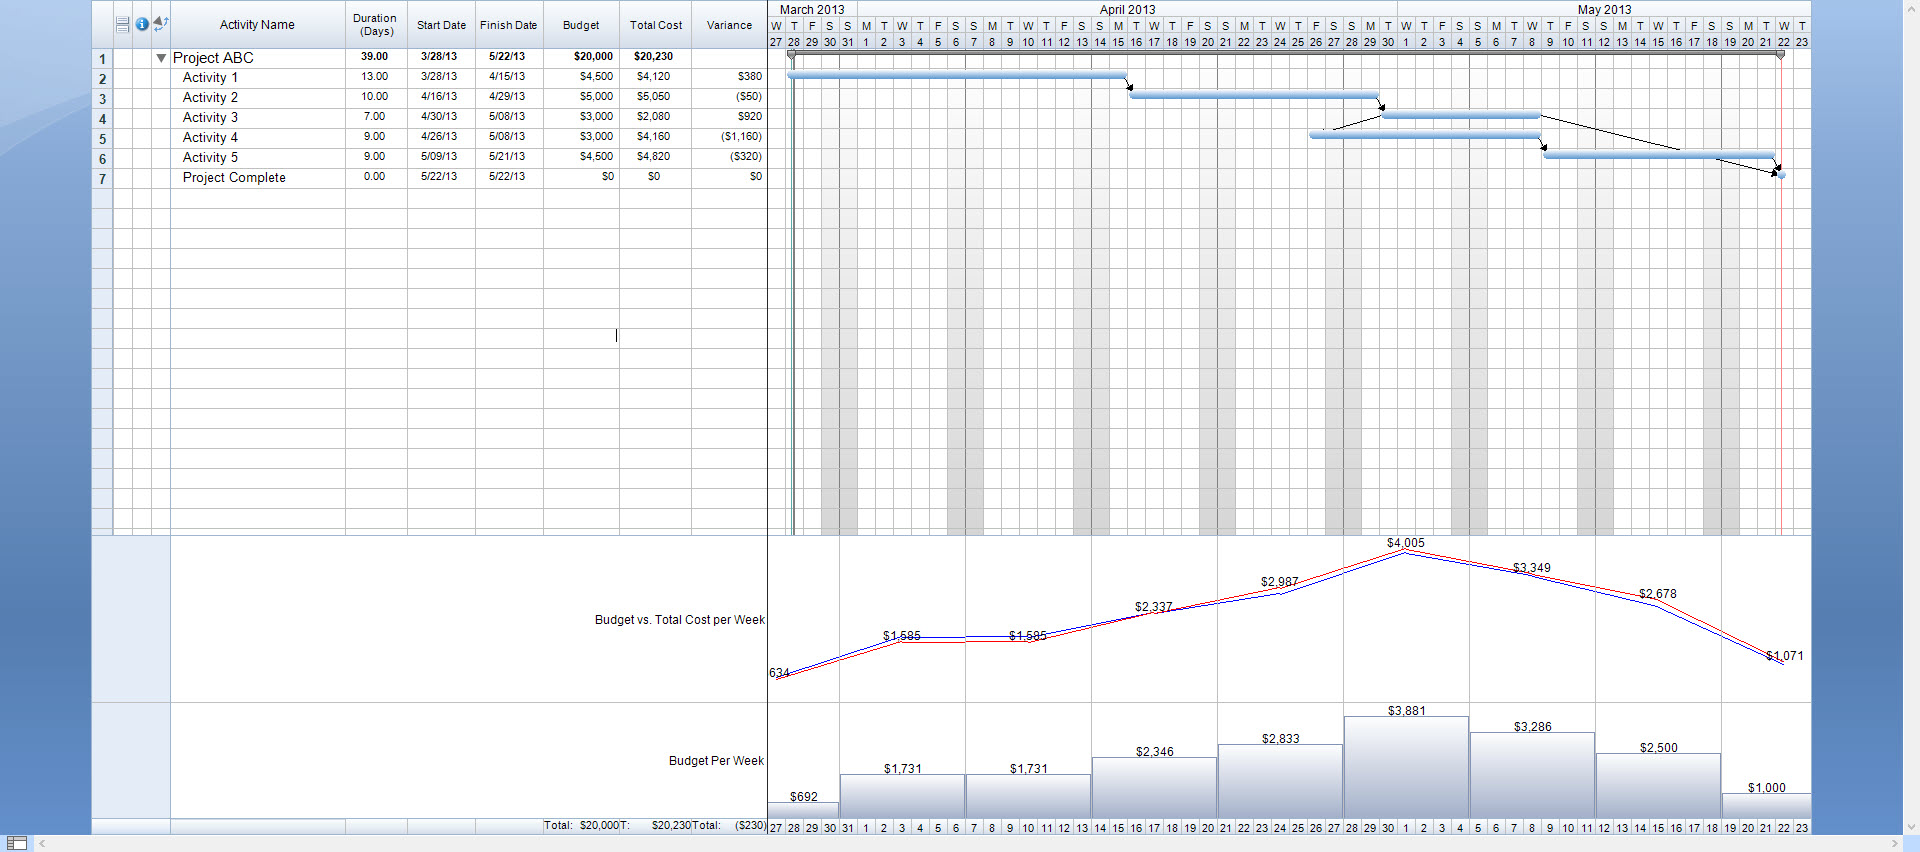 Timeline with Budget vs Total Cost Per Week Summary Graph